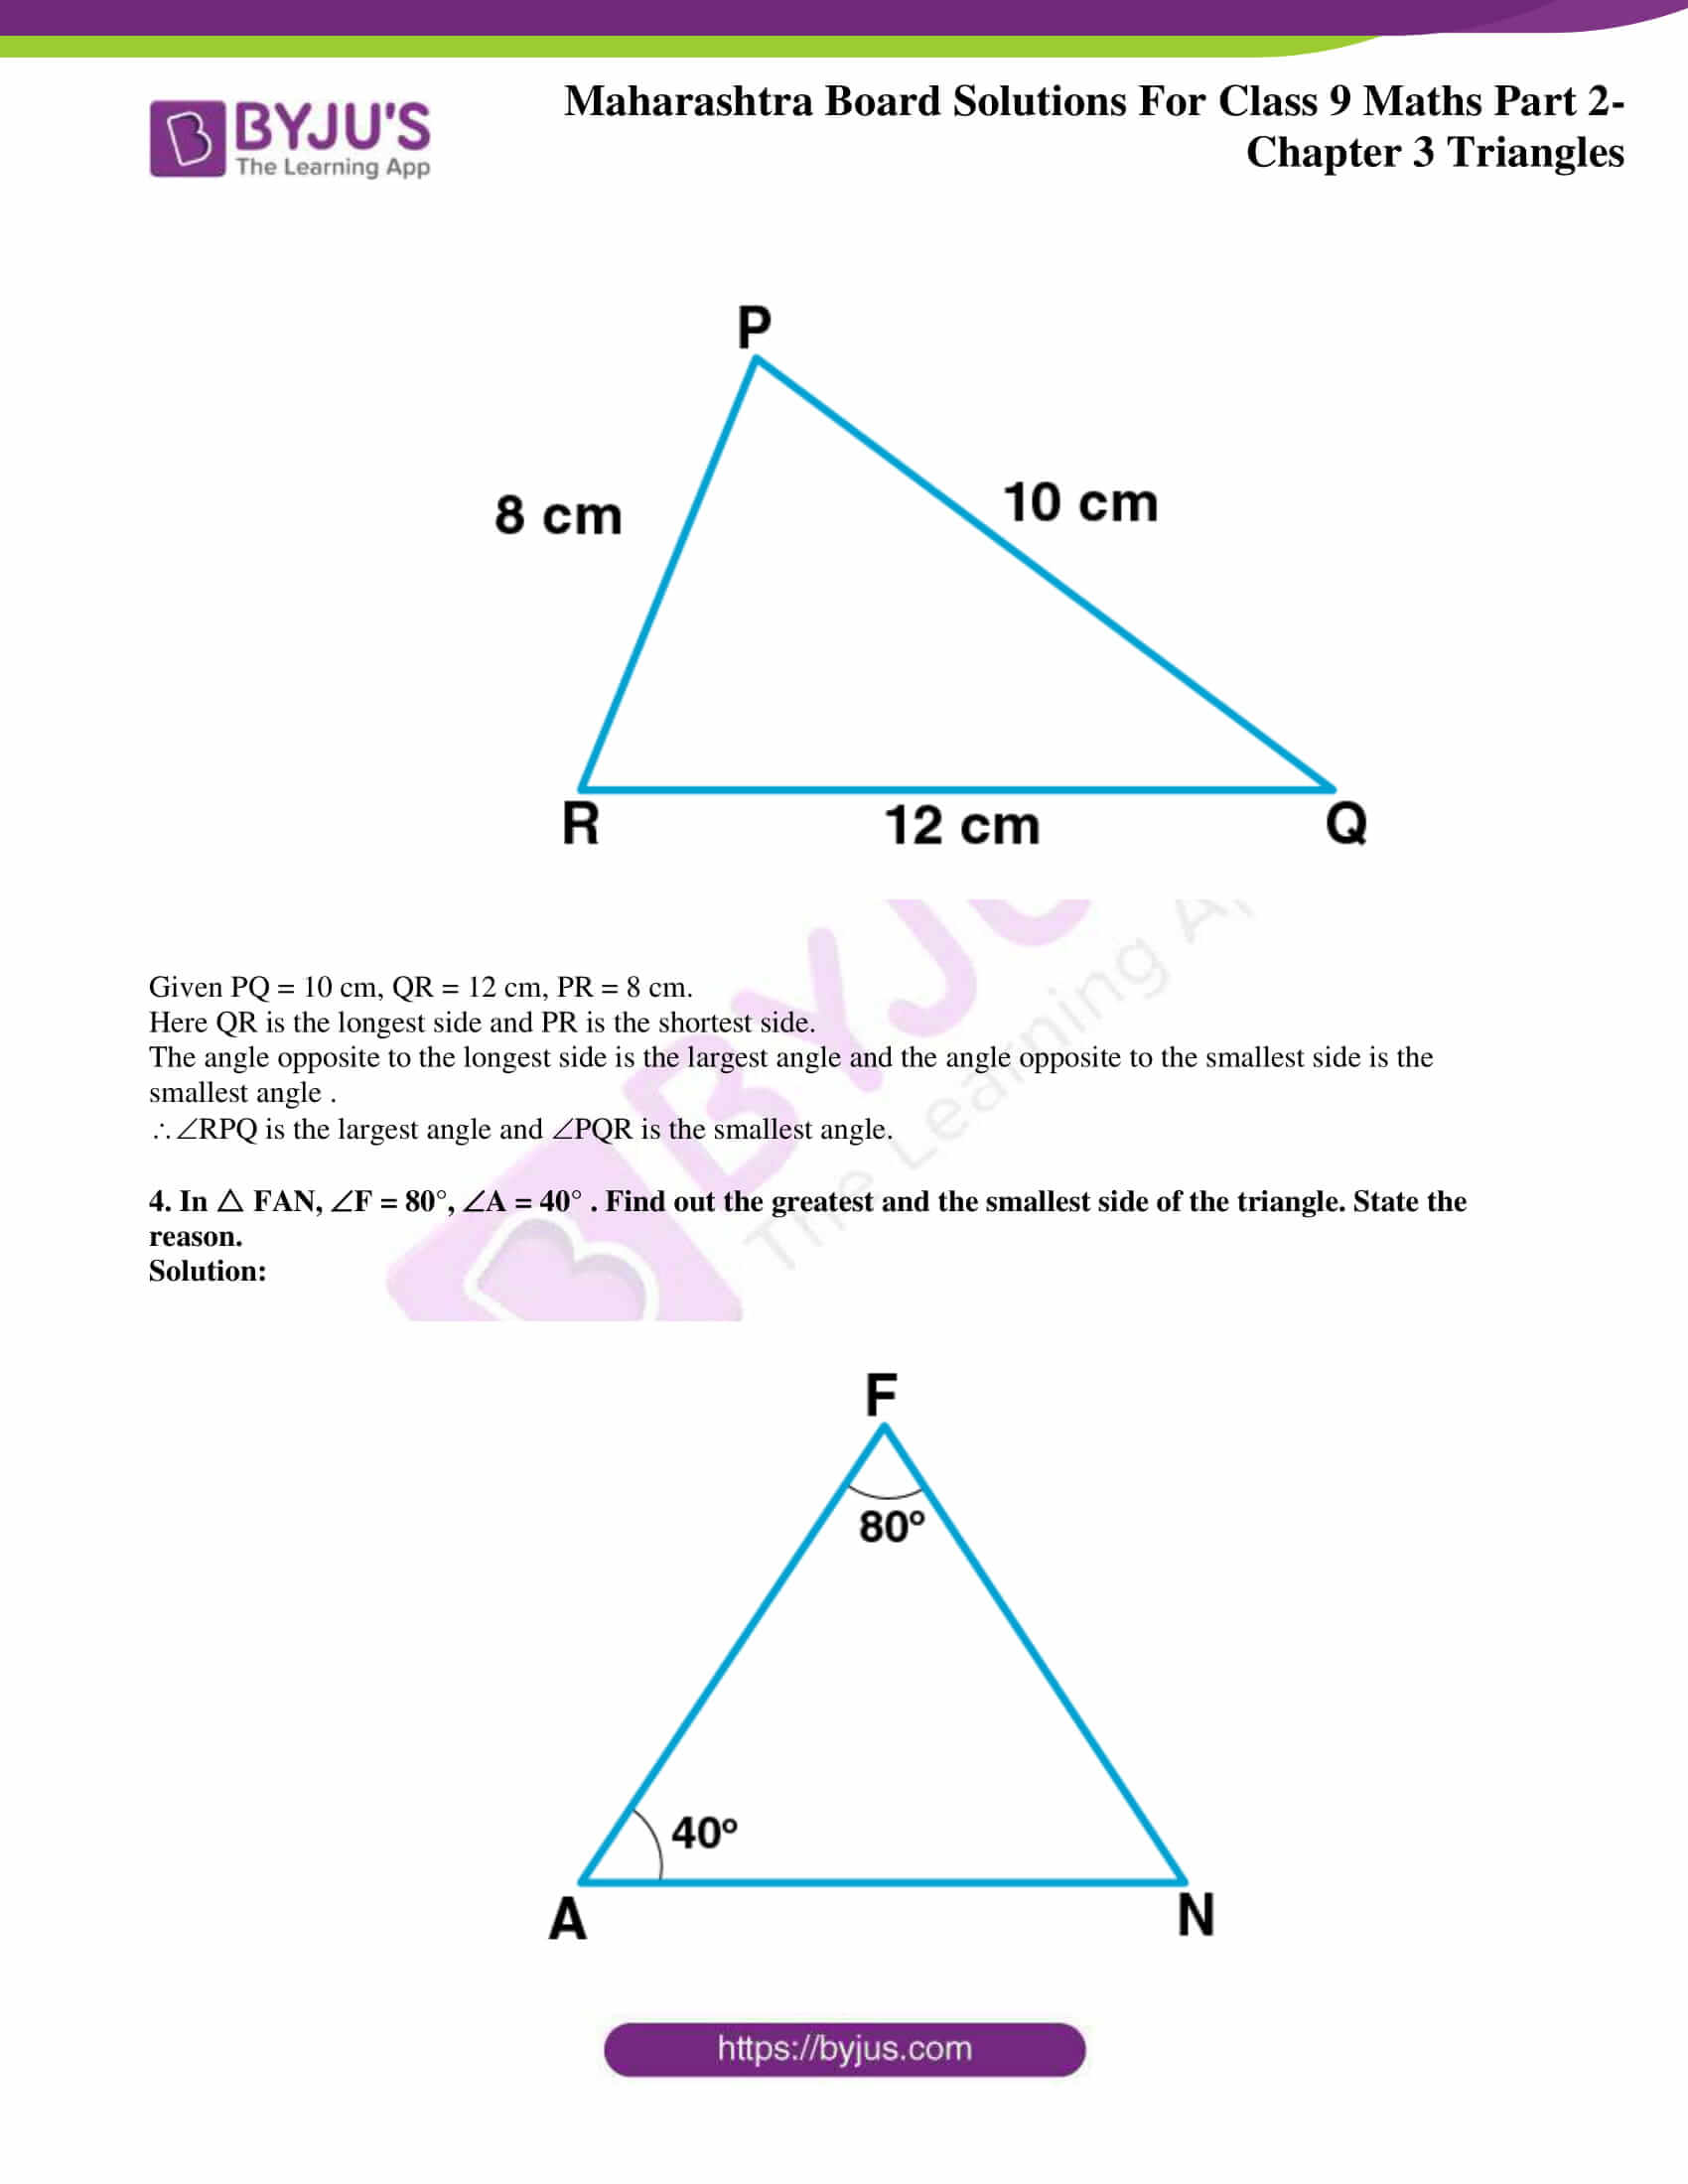 msbshse solutions for class 9 maths part 2 chapter 3 15